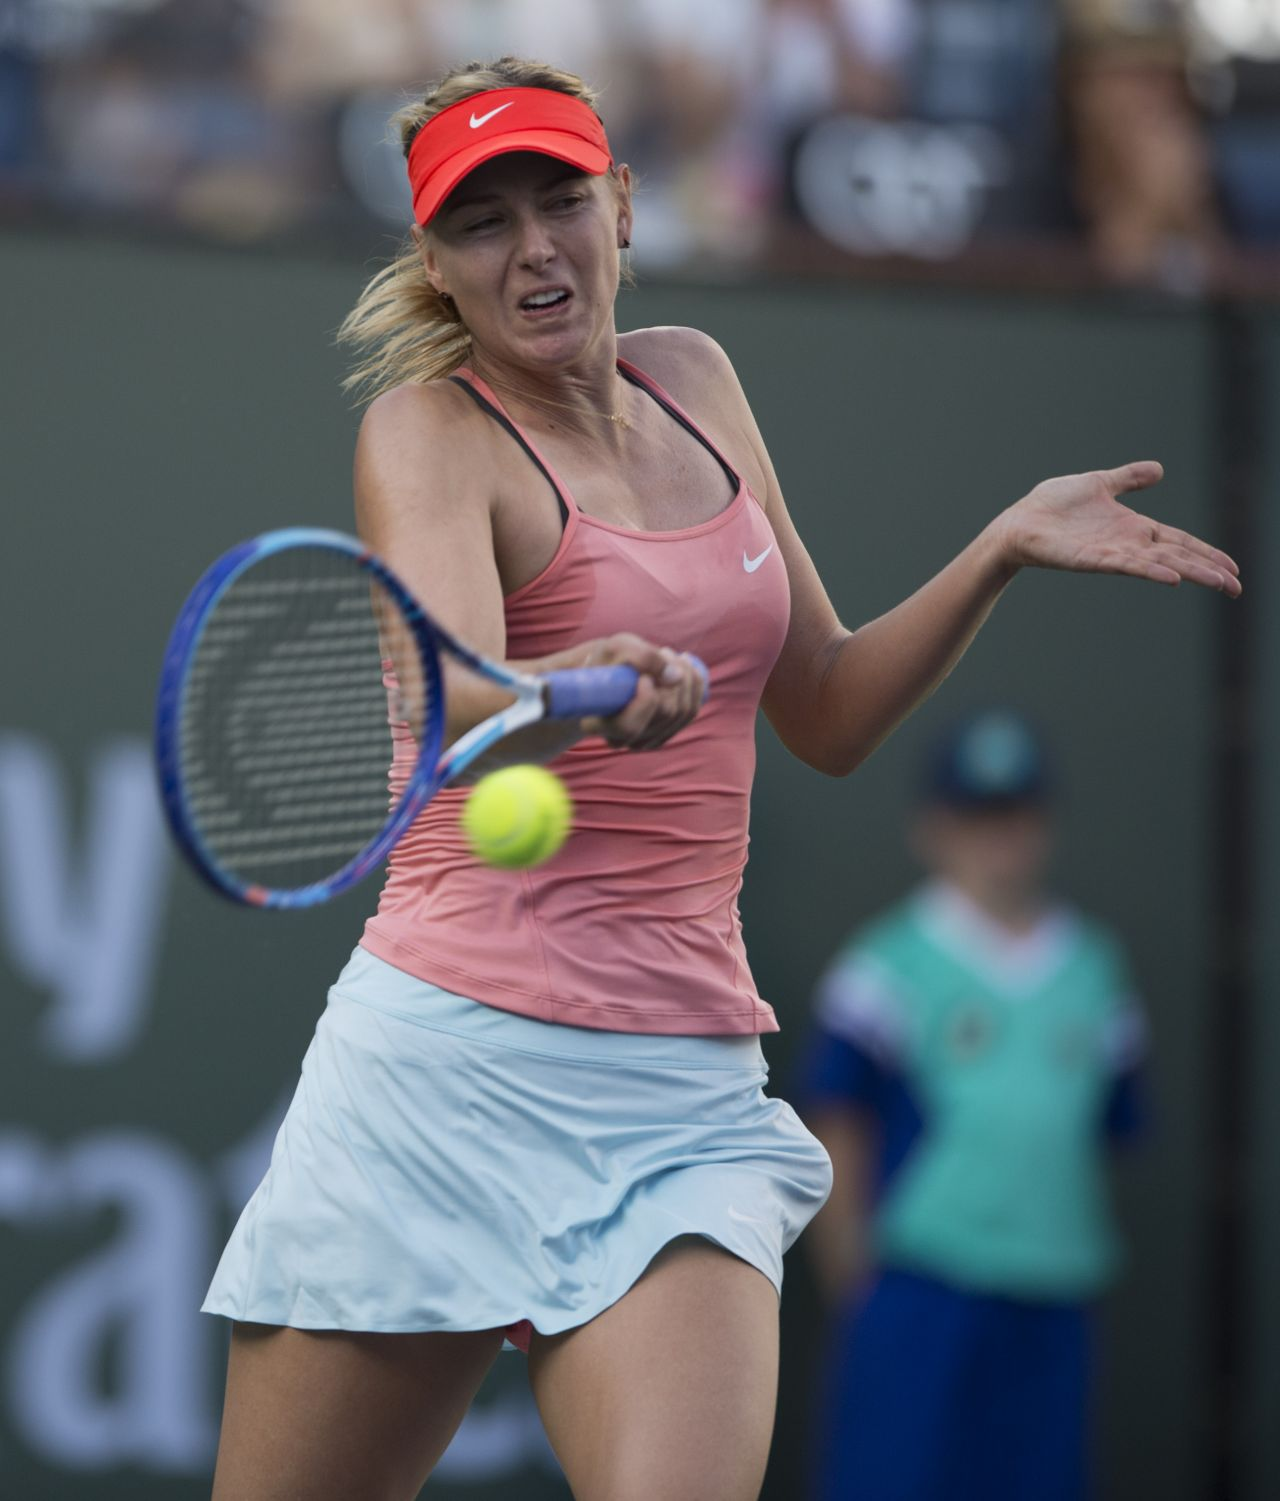 Maria Sharapova - 2015 BNP Paribas Open at Indian Wells - 2nd Round